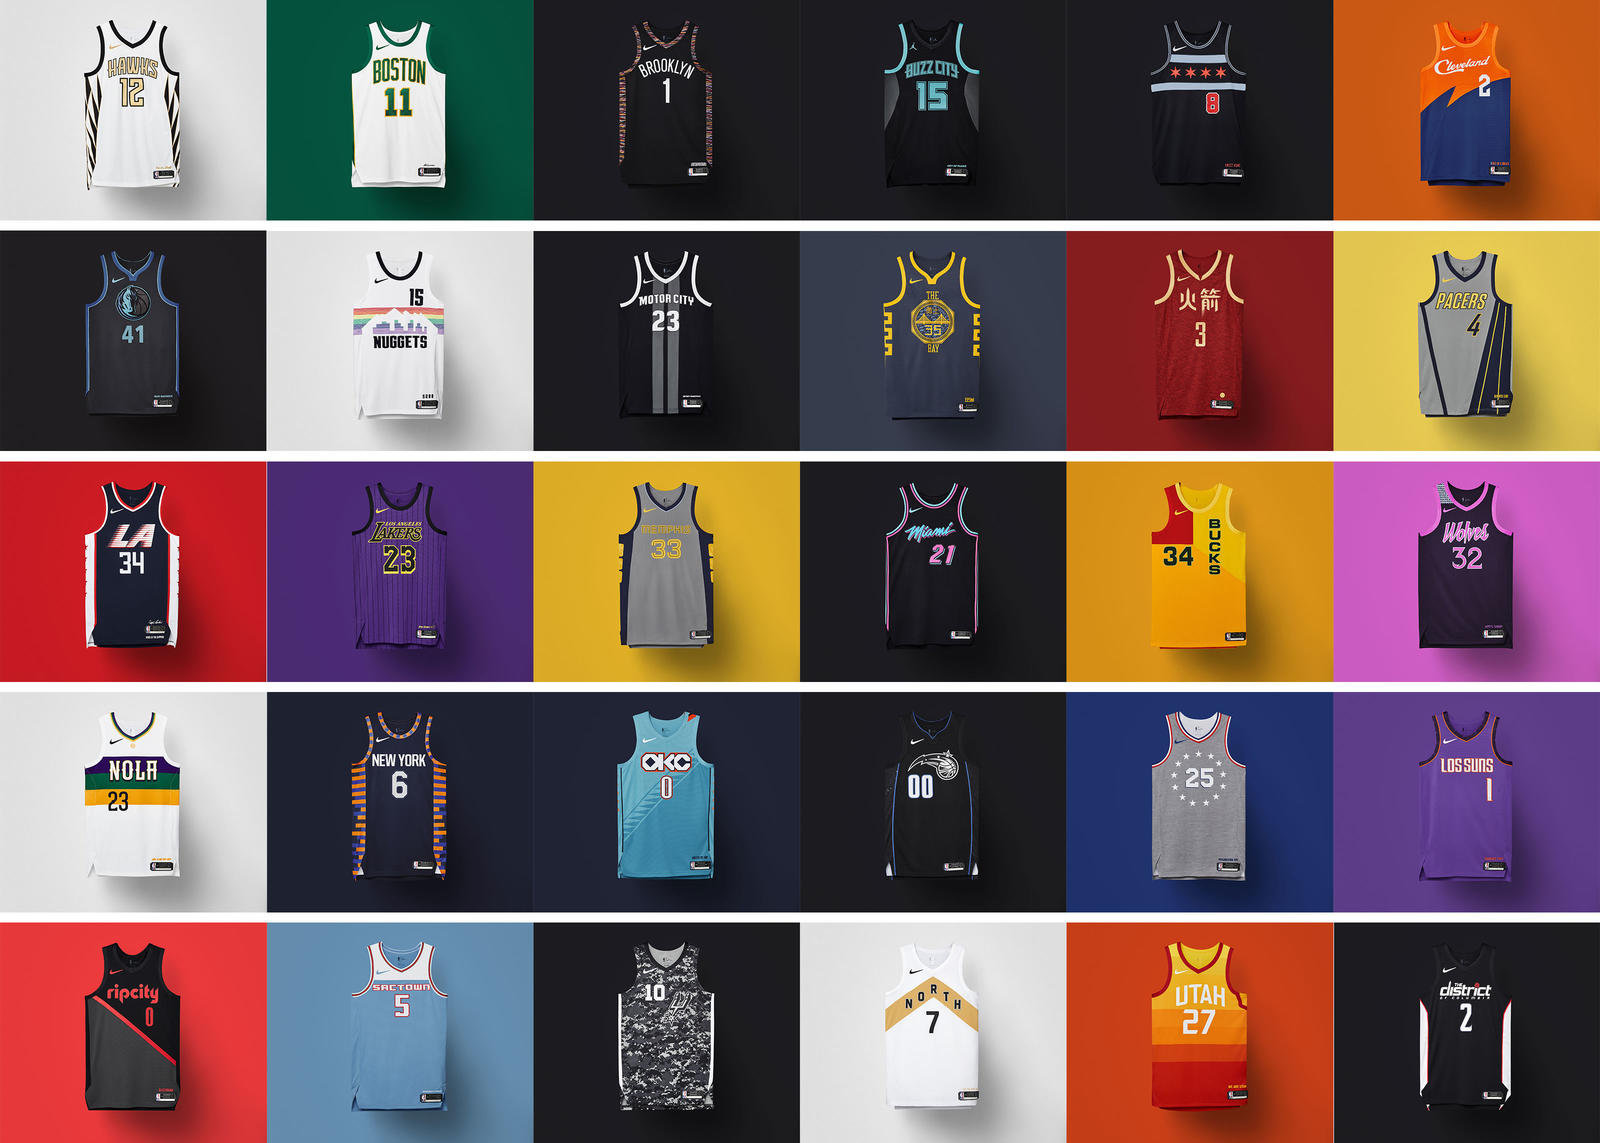 sneakers for cheap 95781 a1a73 NBA City Edition Uniforms 2018-19 - Nike News